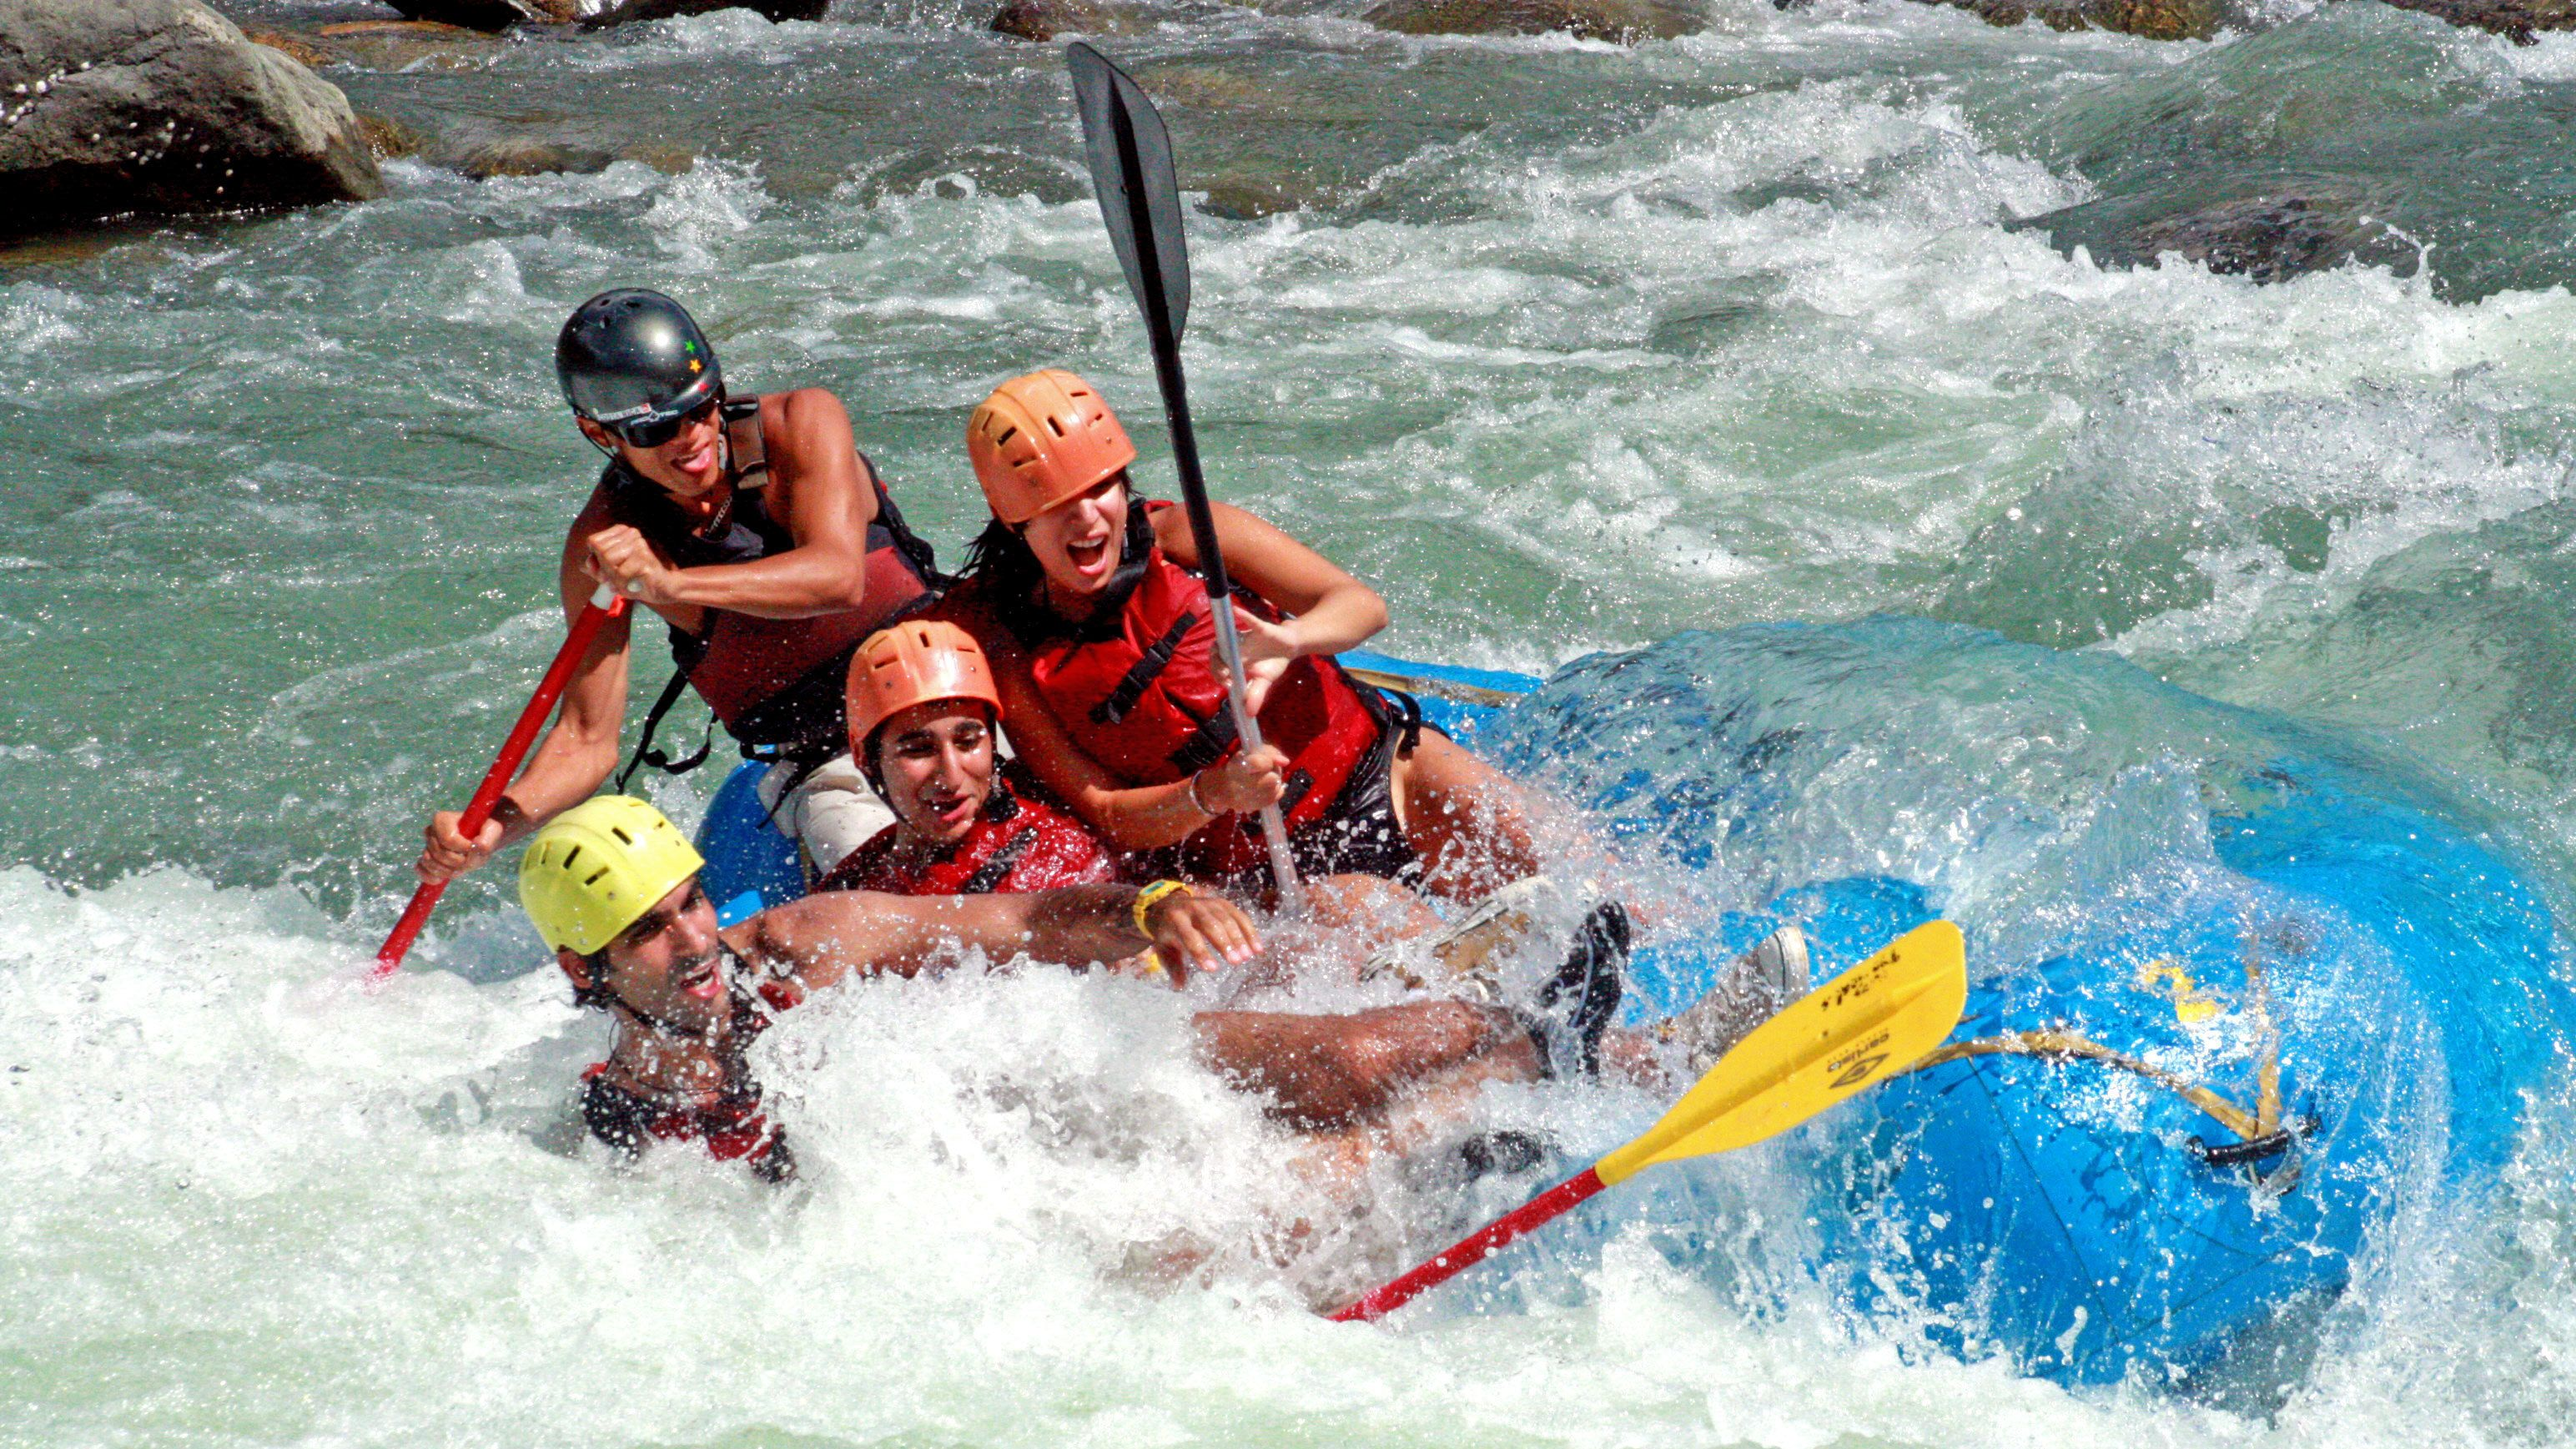 Whitewater Rafting on the Savegre River with Lunch